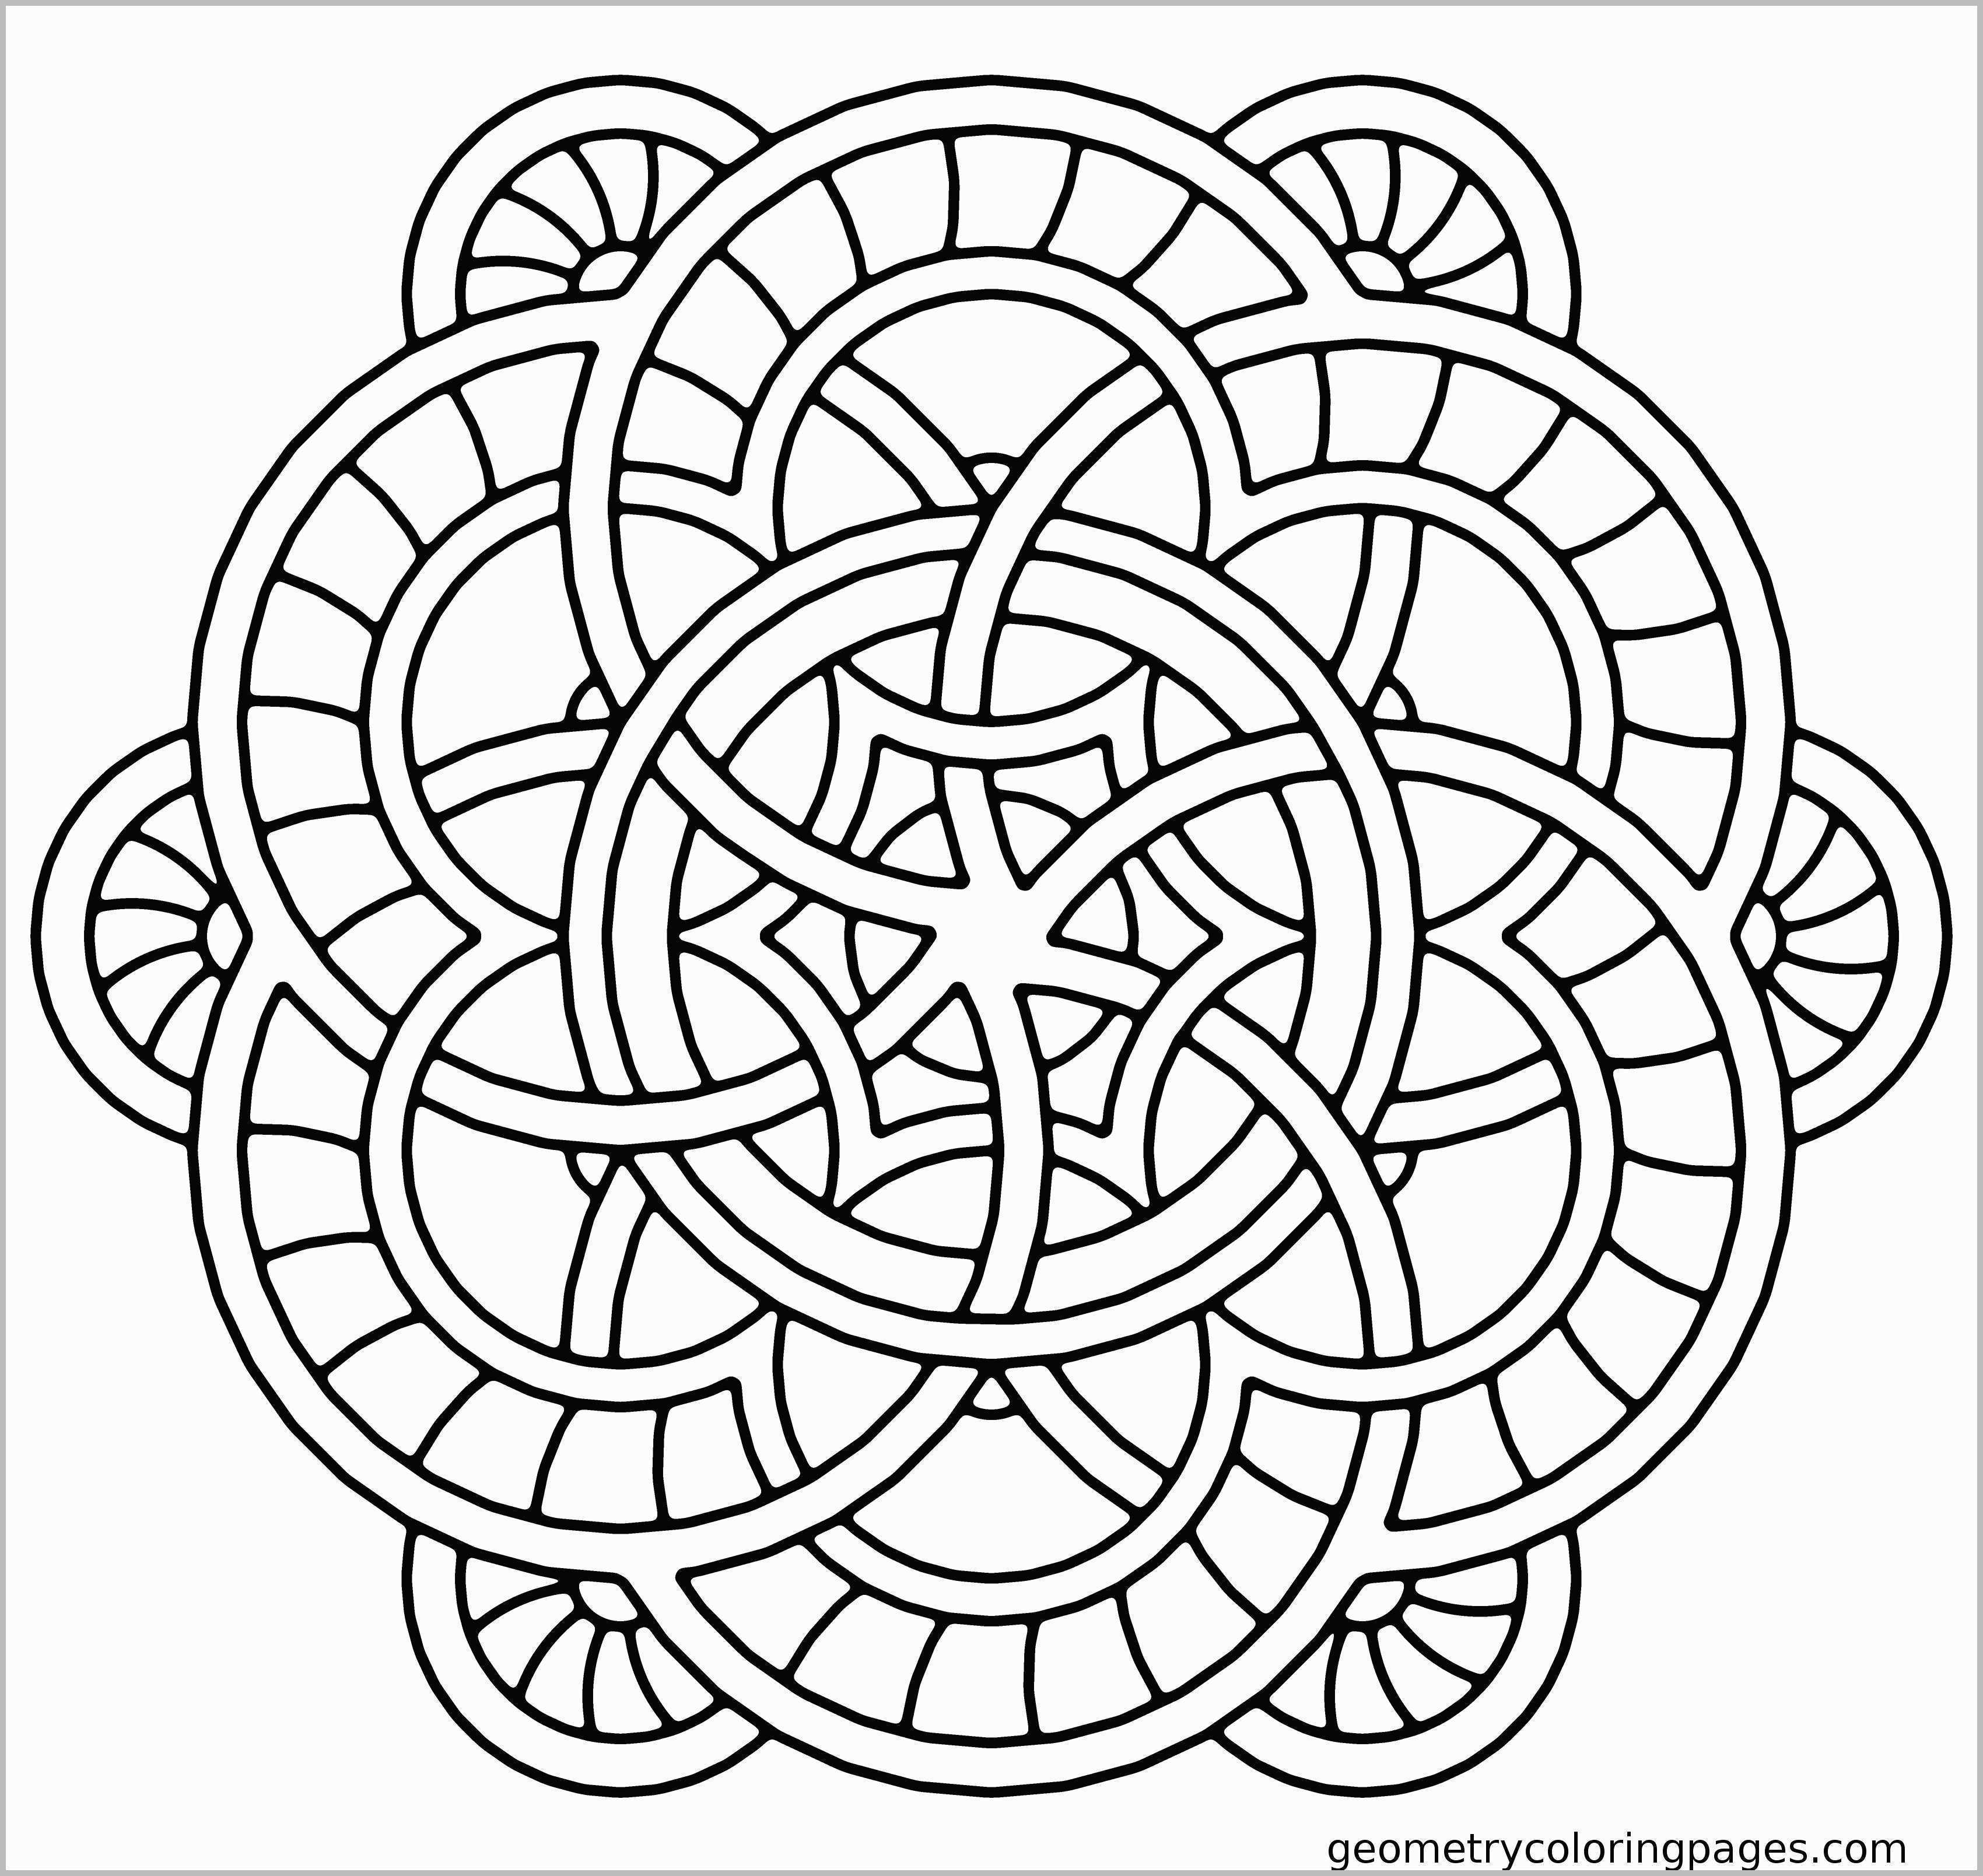 Printable Mandala Coloring Pages For Adults - Mandala Coloring Pages - Free Printable Mandala Coloring Pages